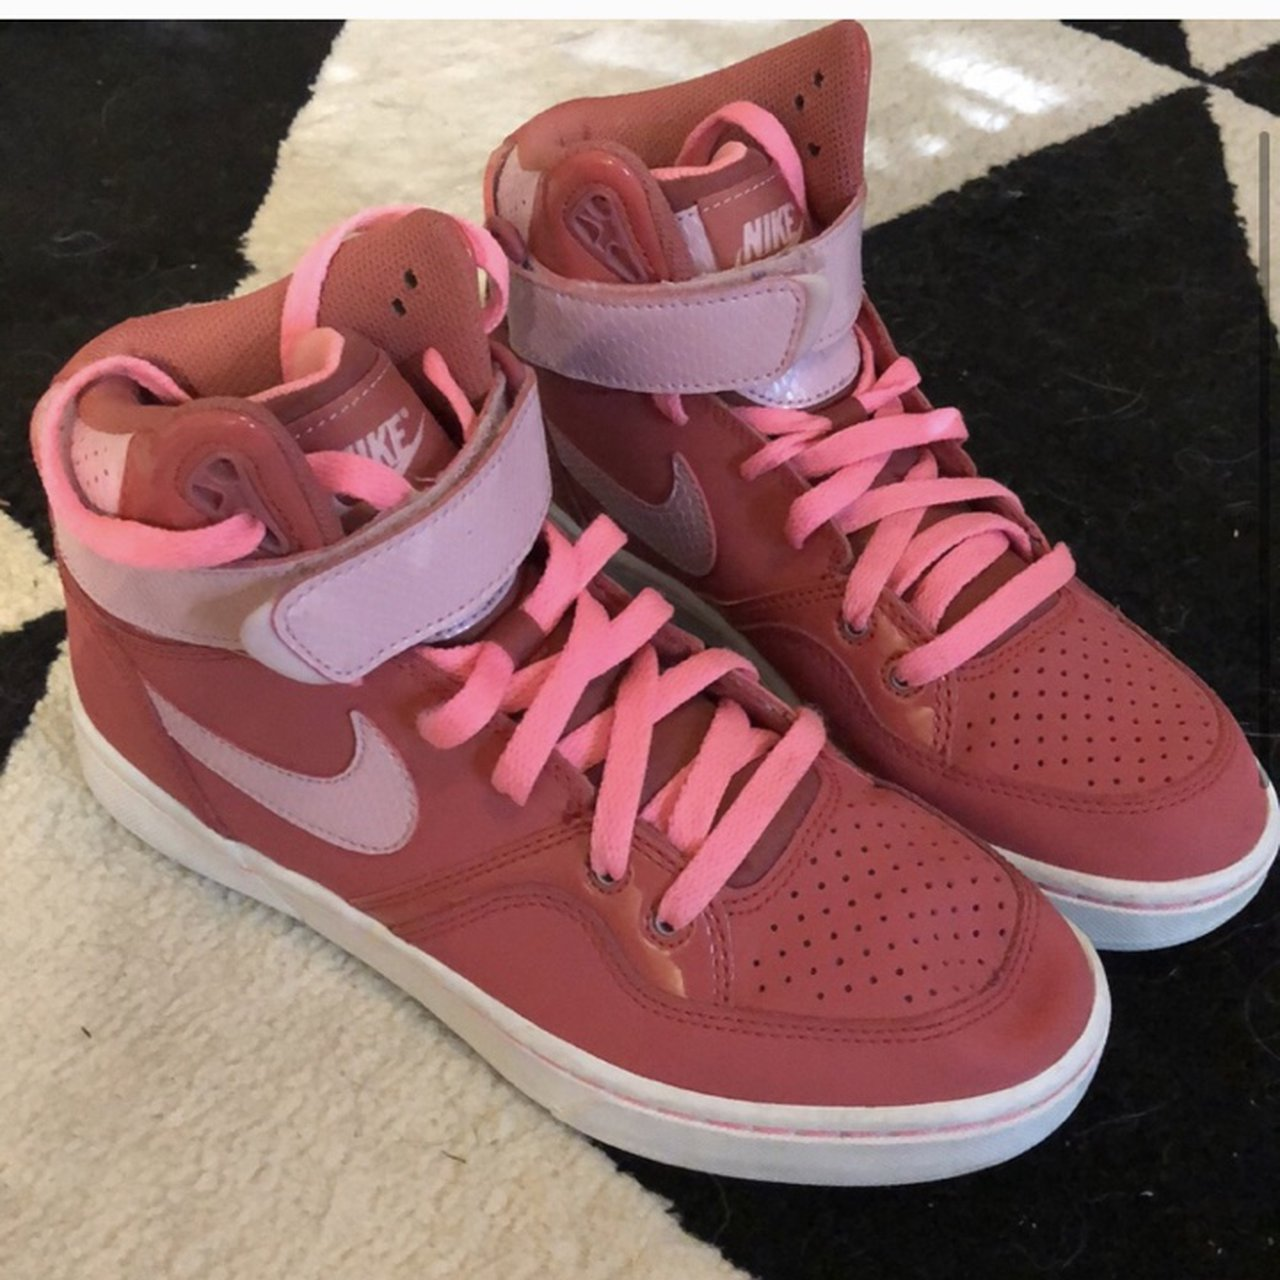 pink nike shoes high tops